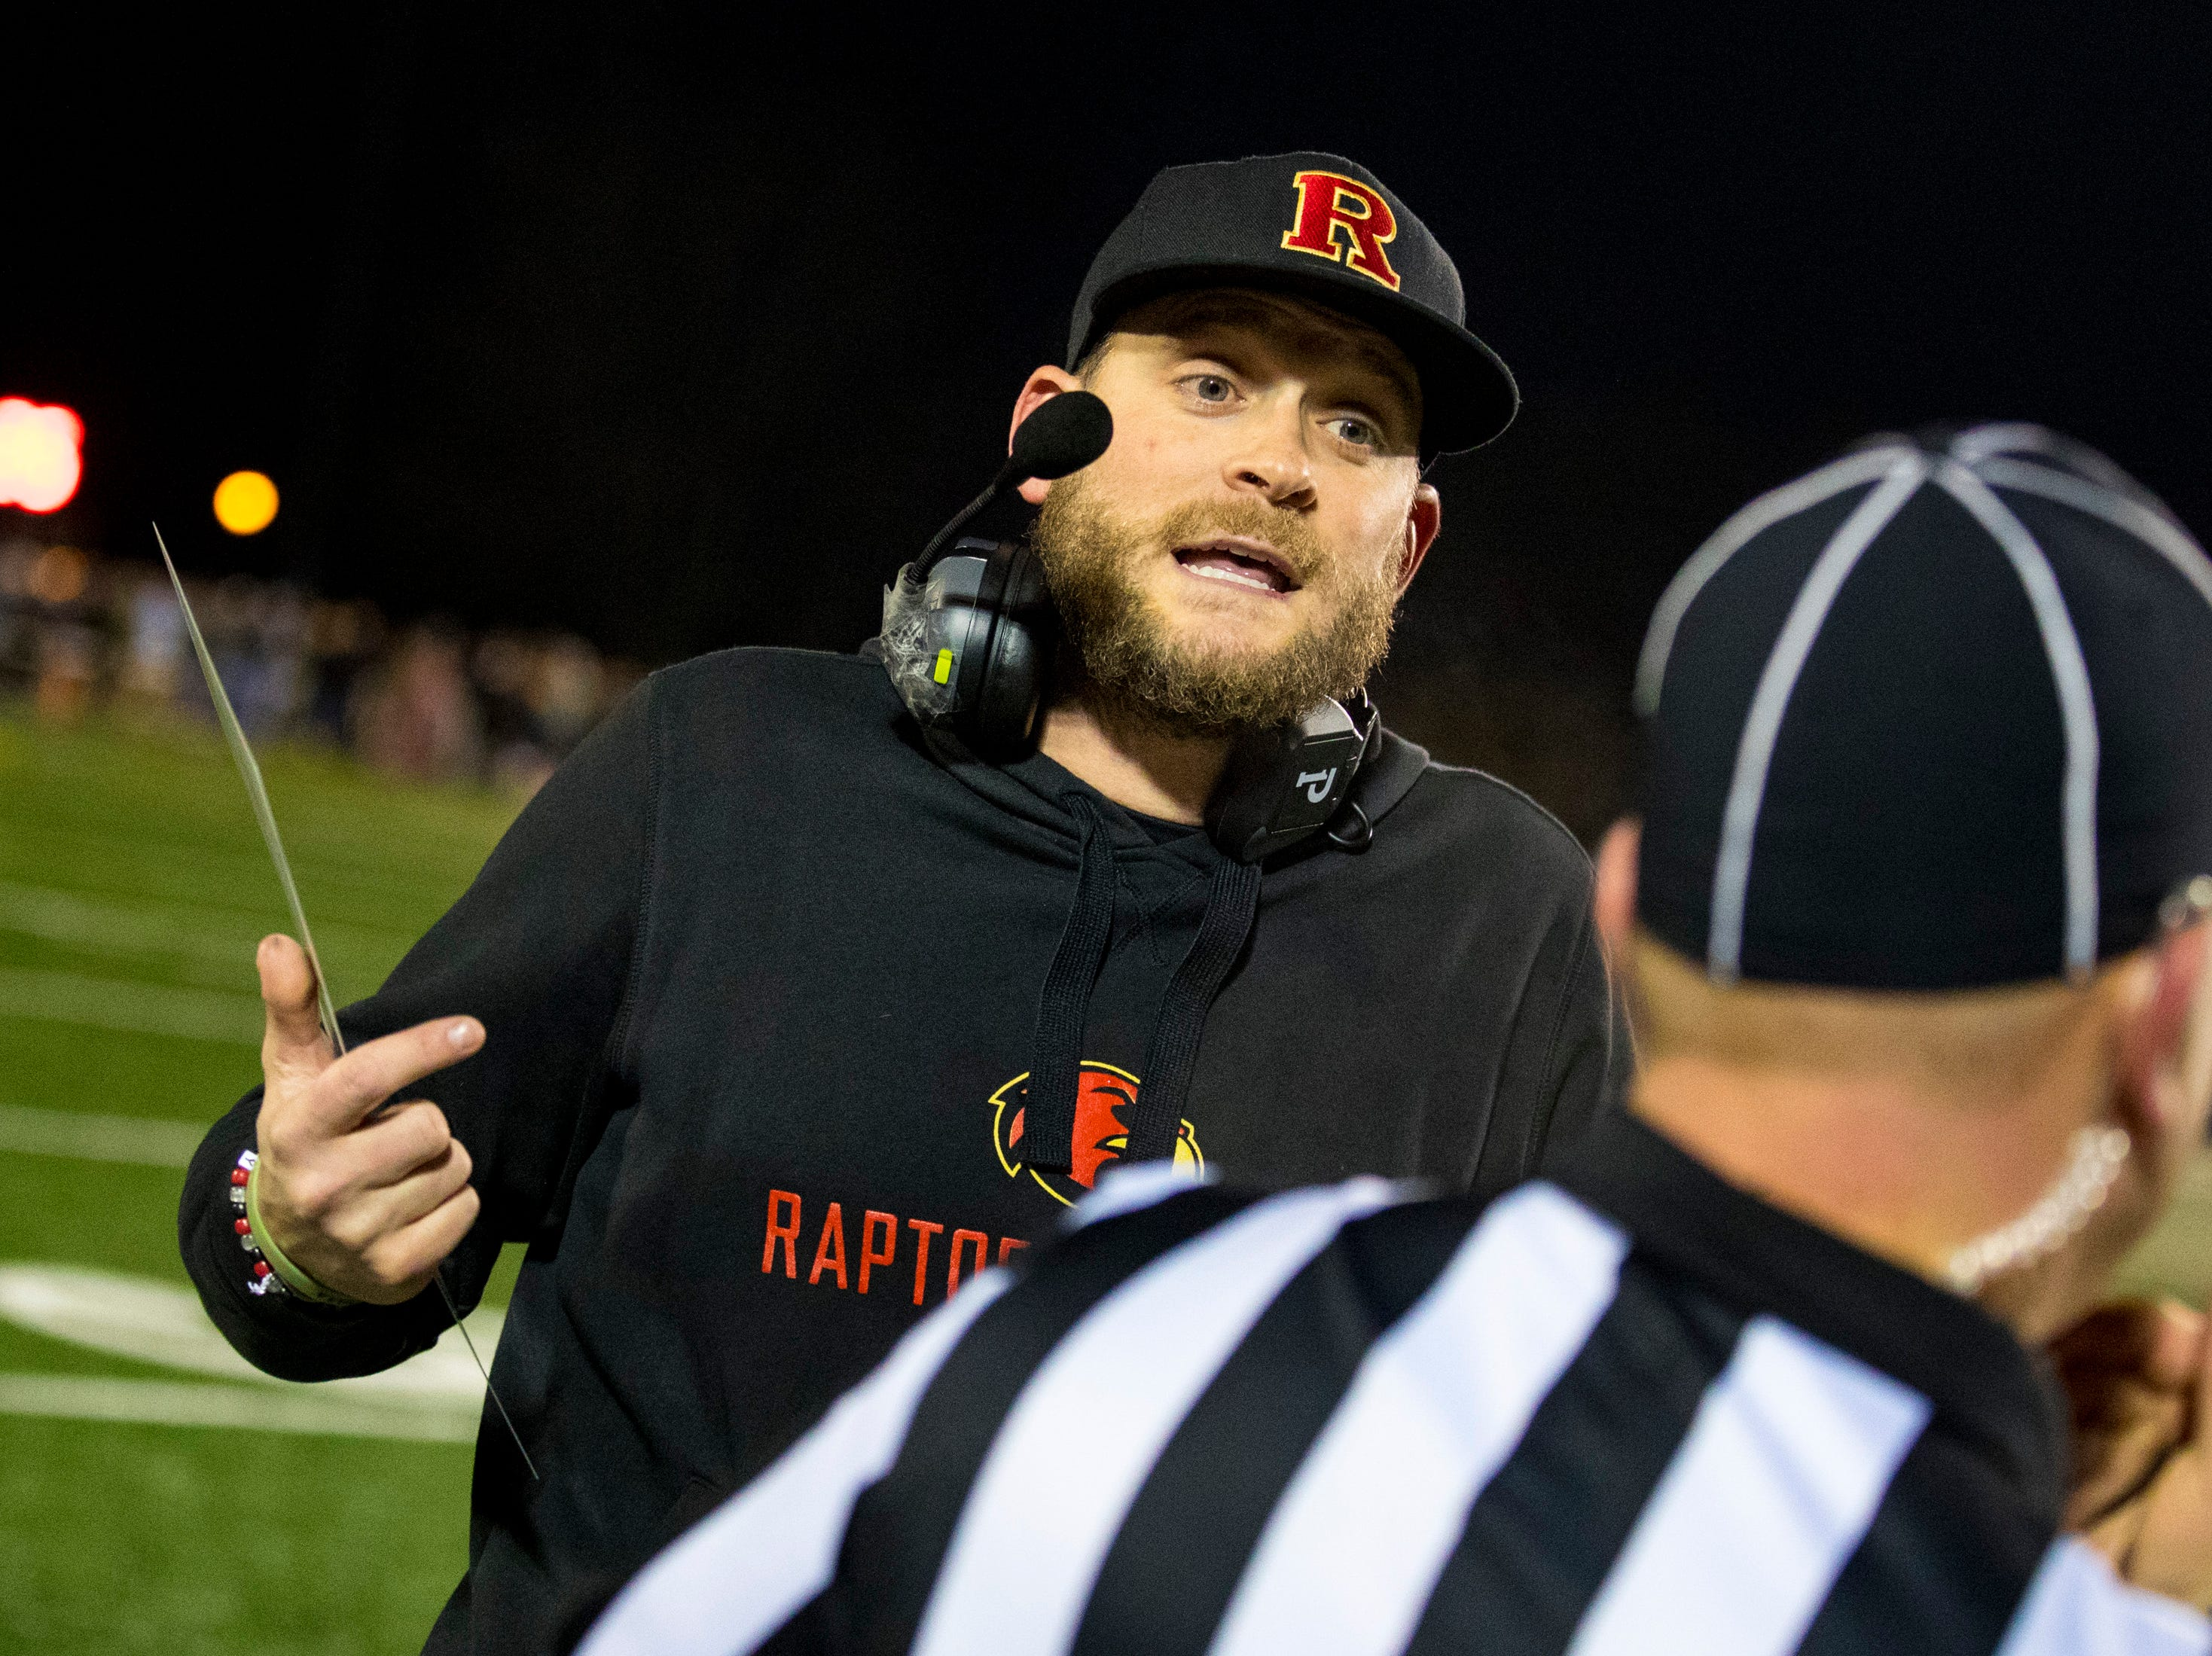 Ravenwood's head coach Matt Daniels argues a penalty during Brentwood's game against Ravenwood at Brentwood High School in Brentwood on Friday, Nov. 16, 2018.